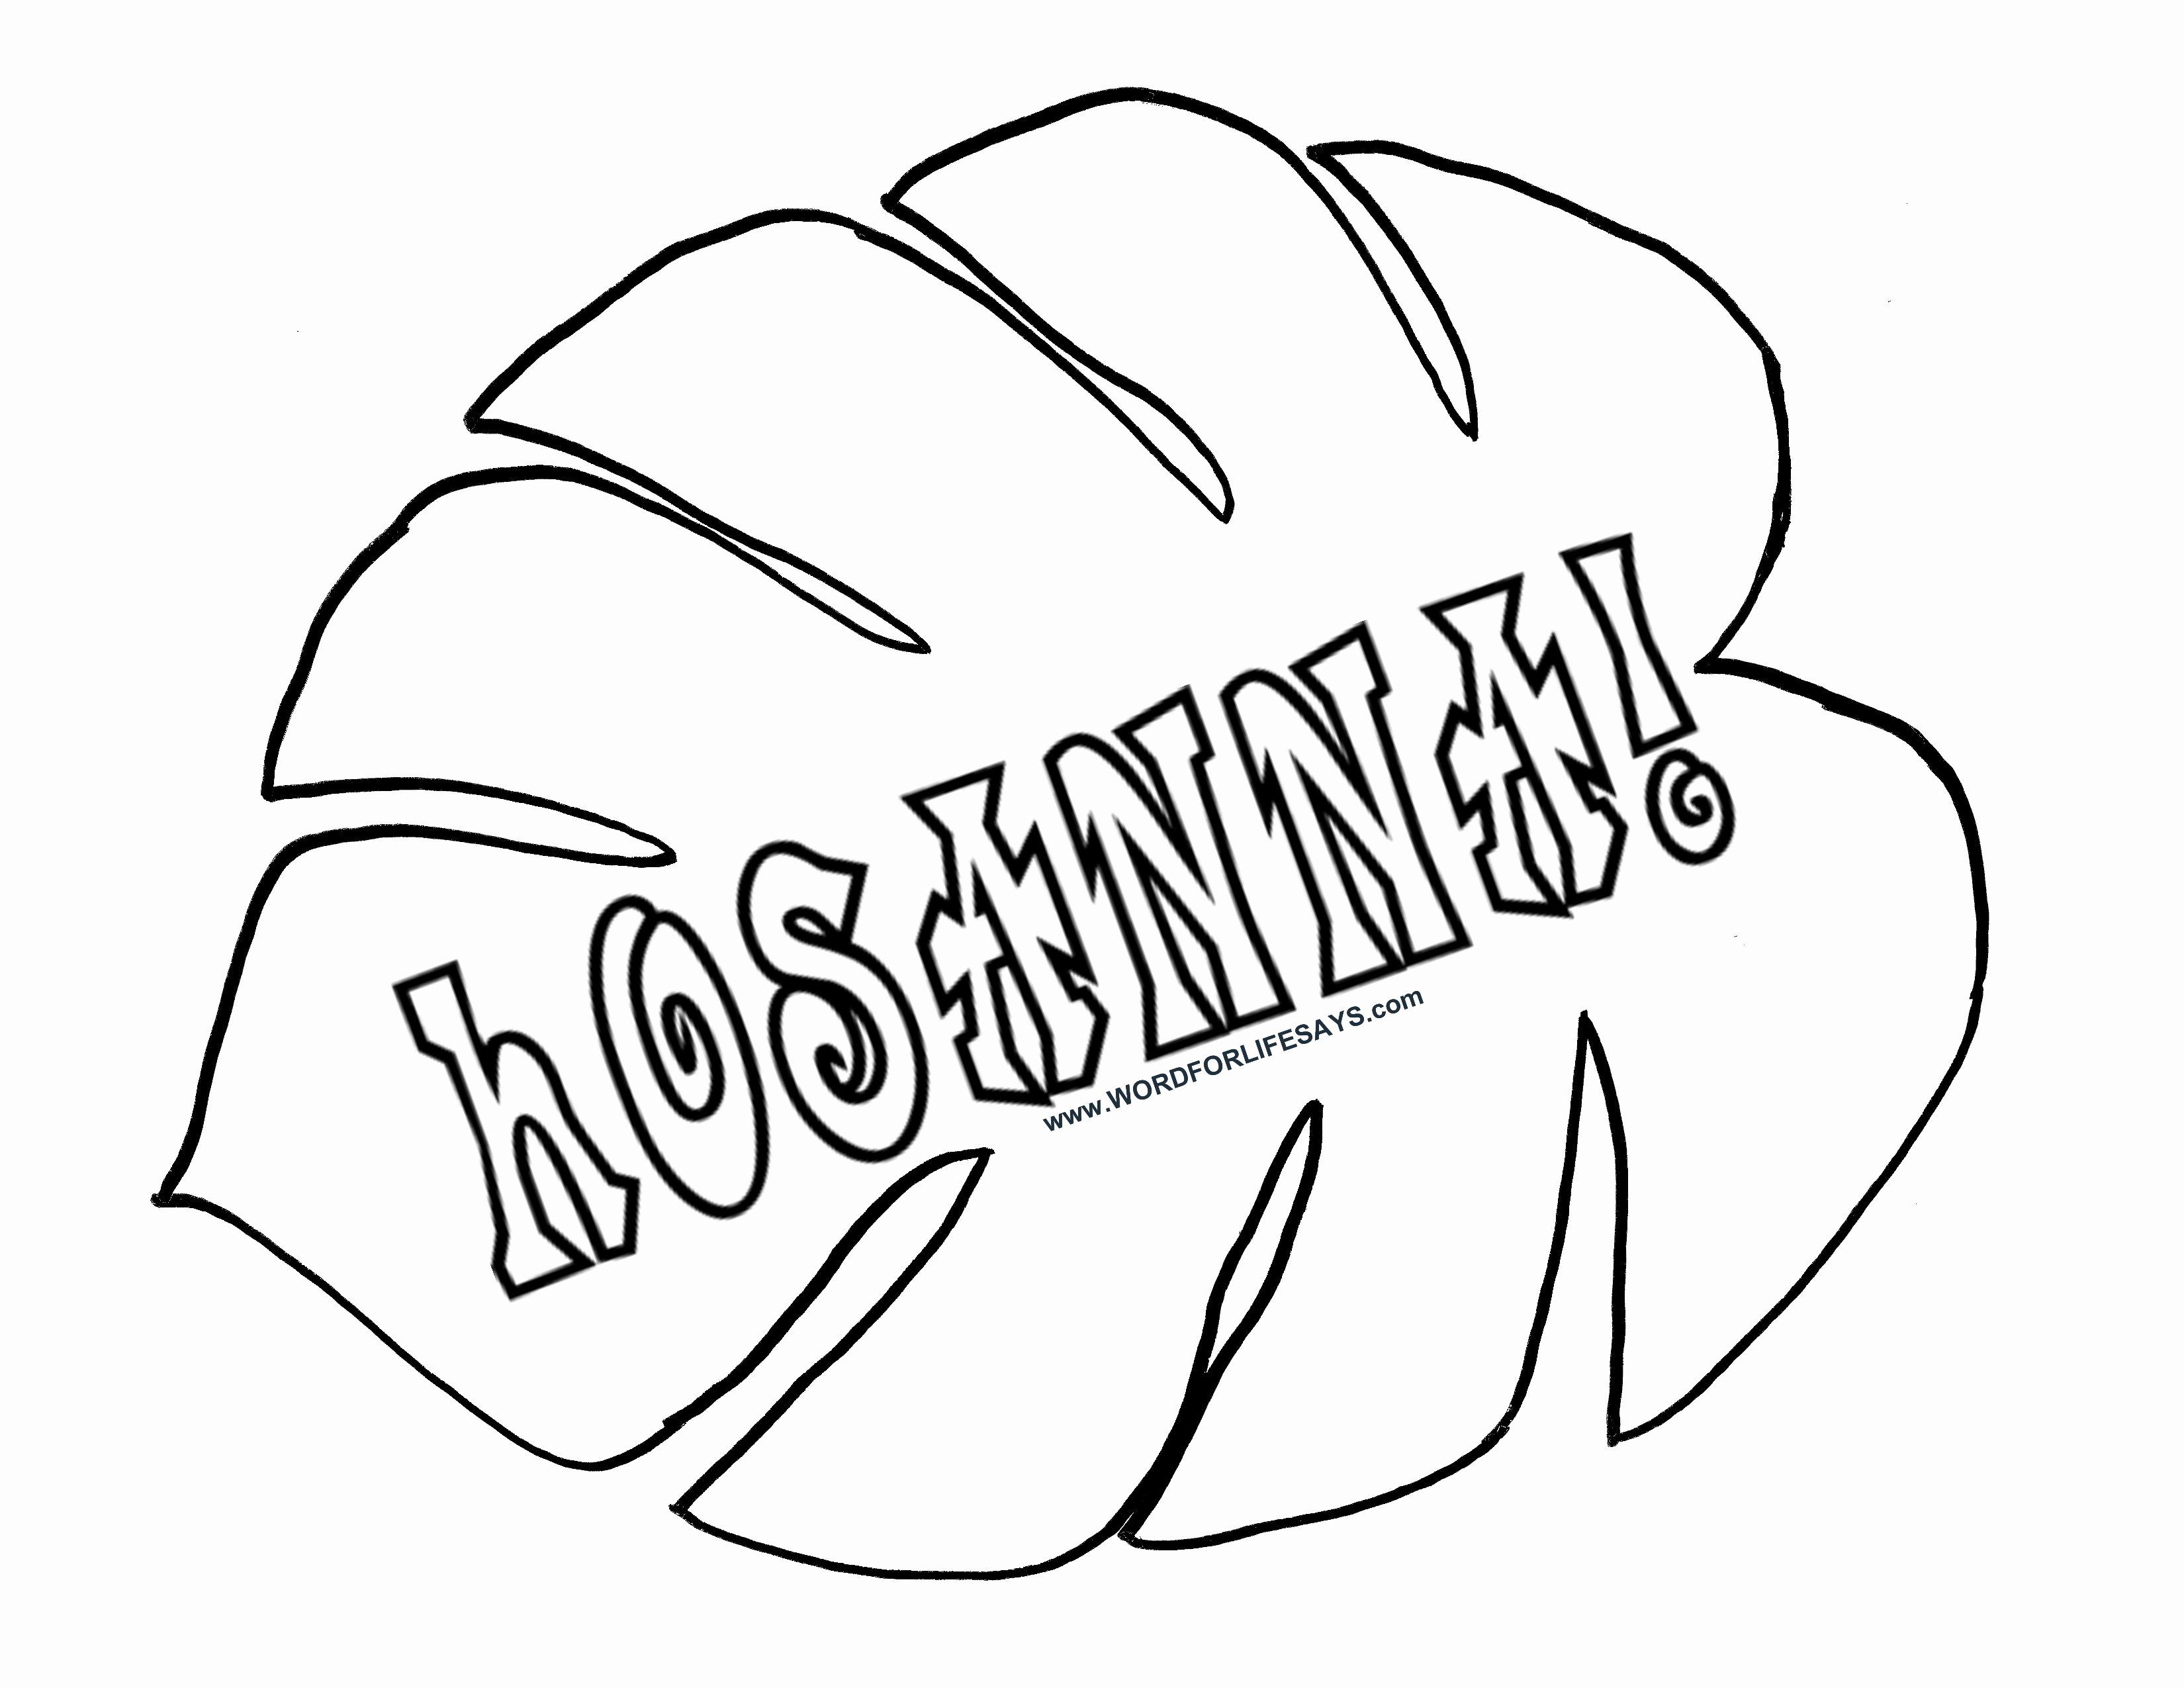 Coloring Pages For Palm Sunday With Images Leaf Template